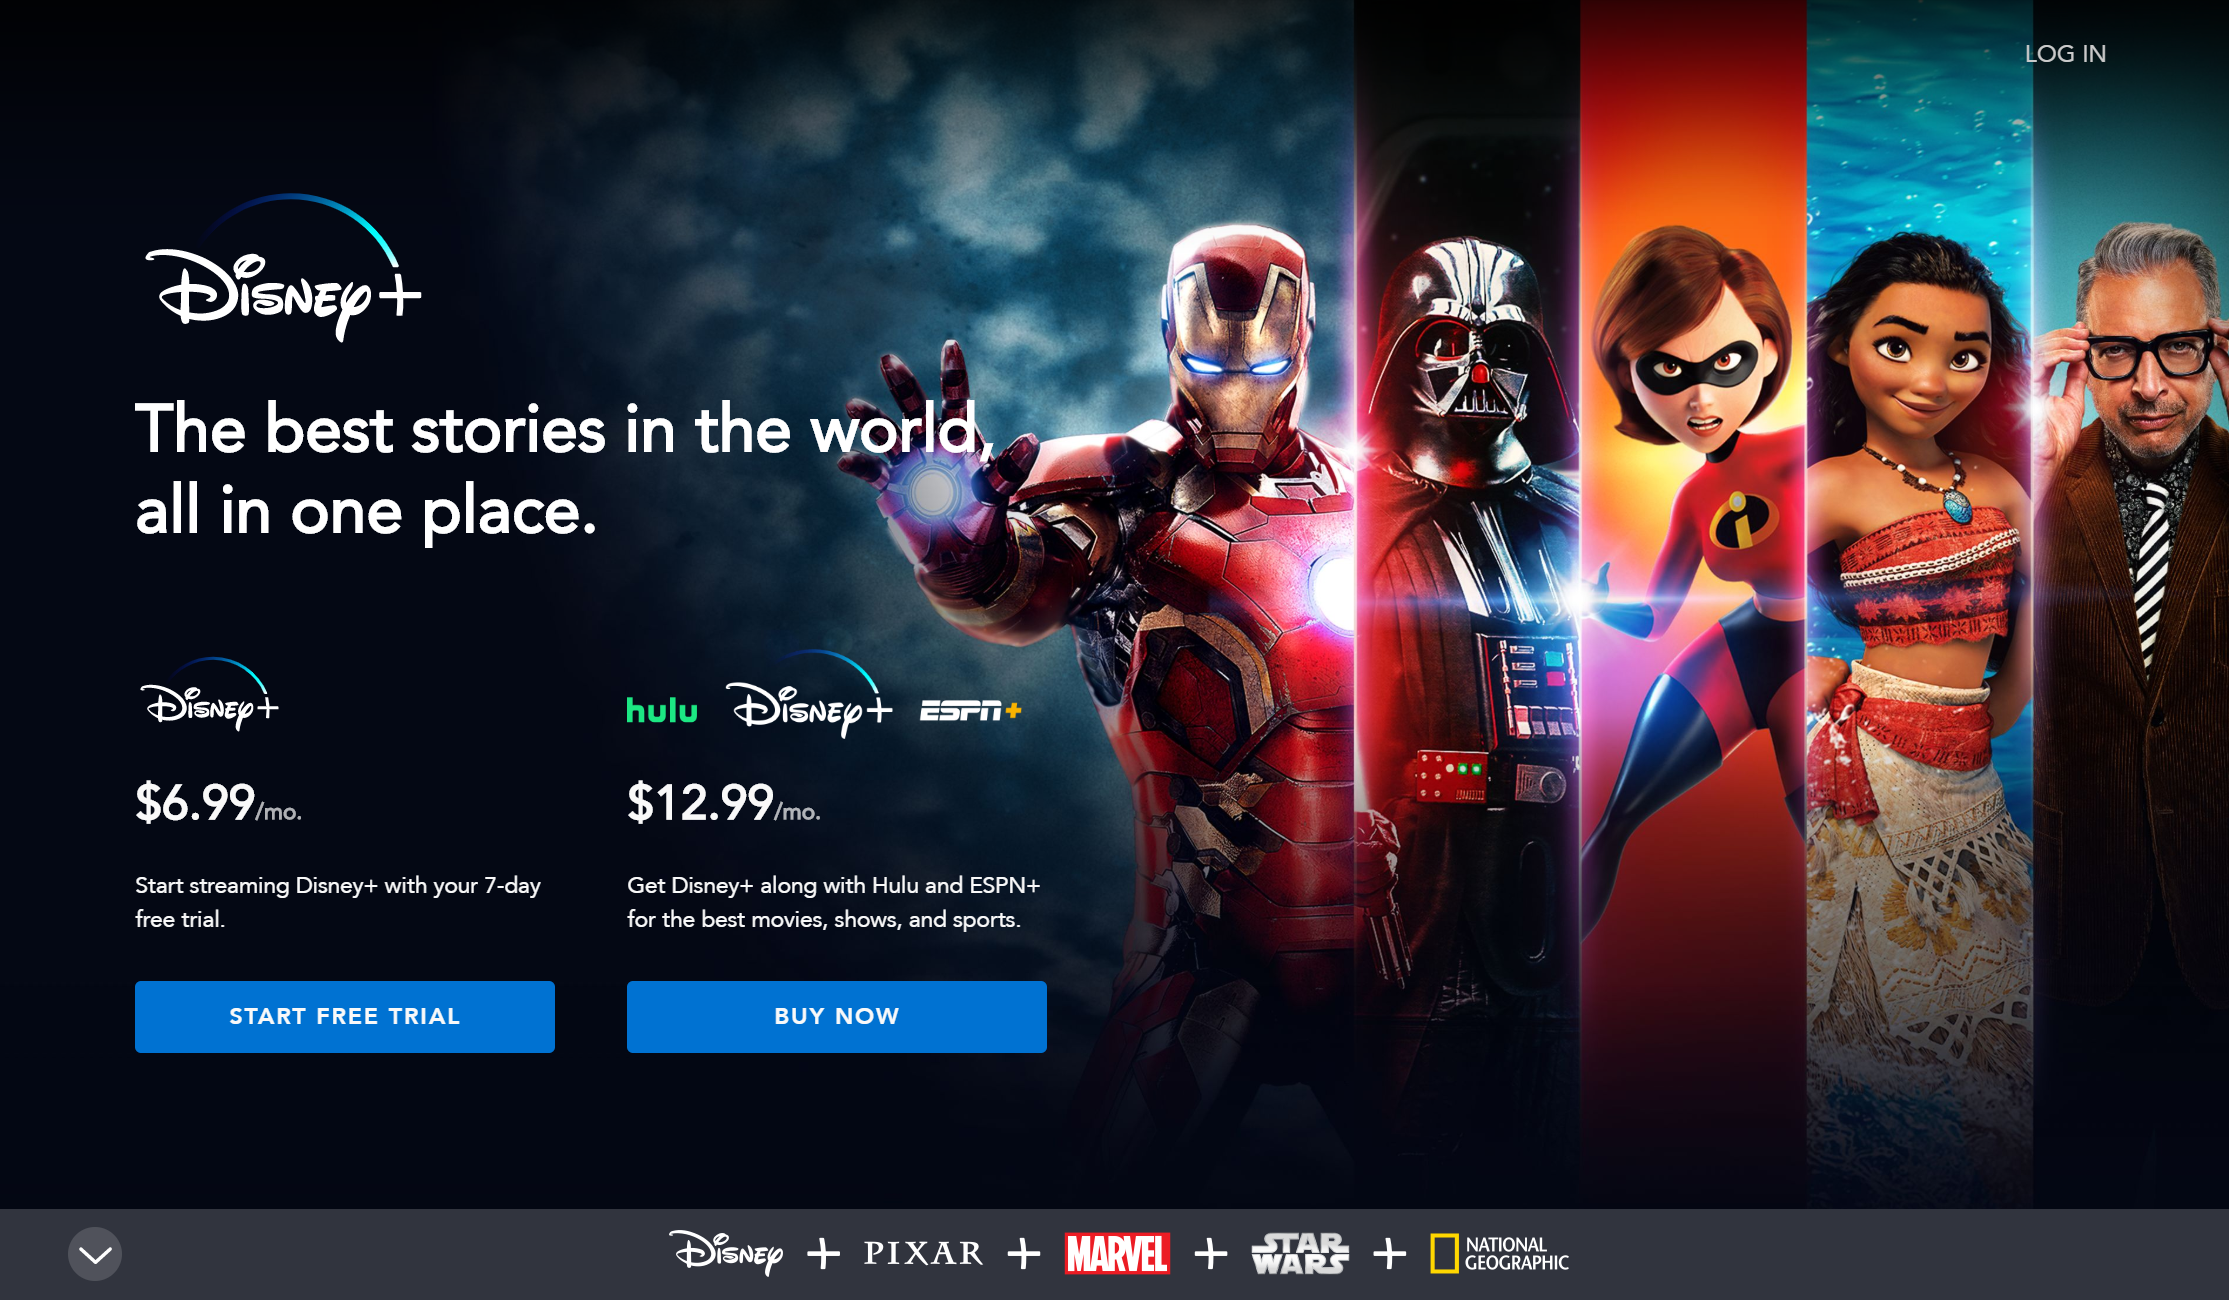 Disney+ Homepage for non-logged in users displaying prices and package options